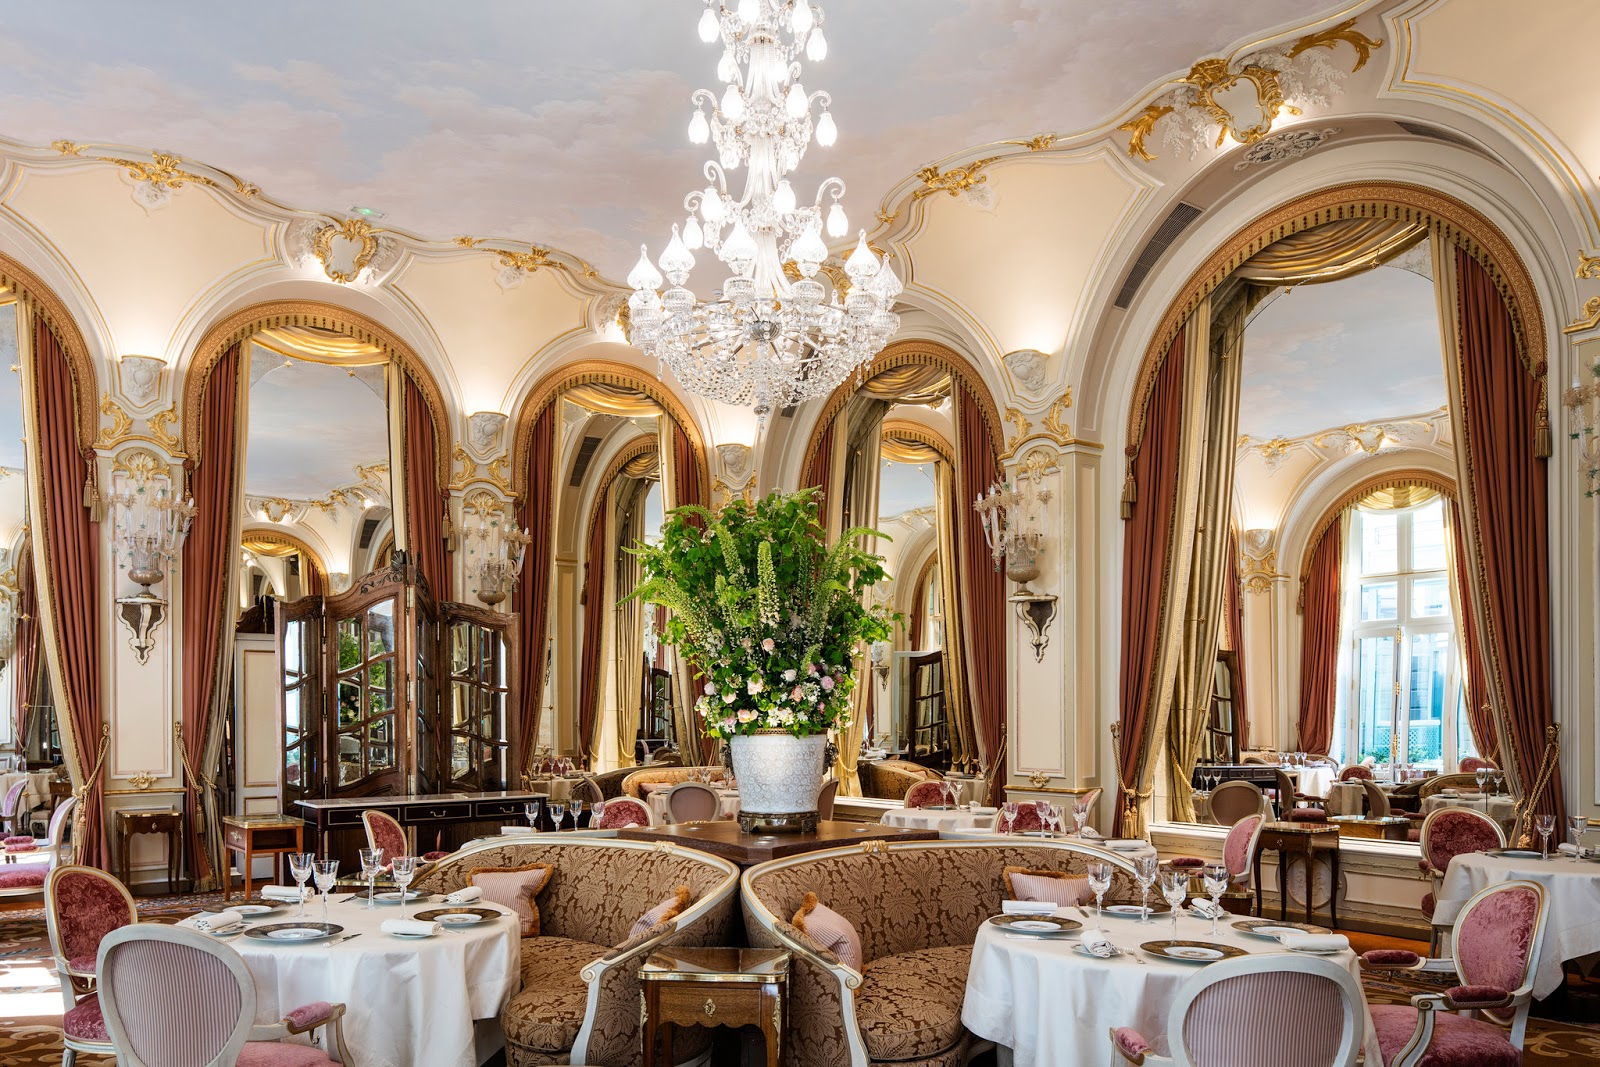 Dining area in renovated Ritz Paris